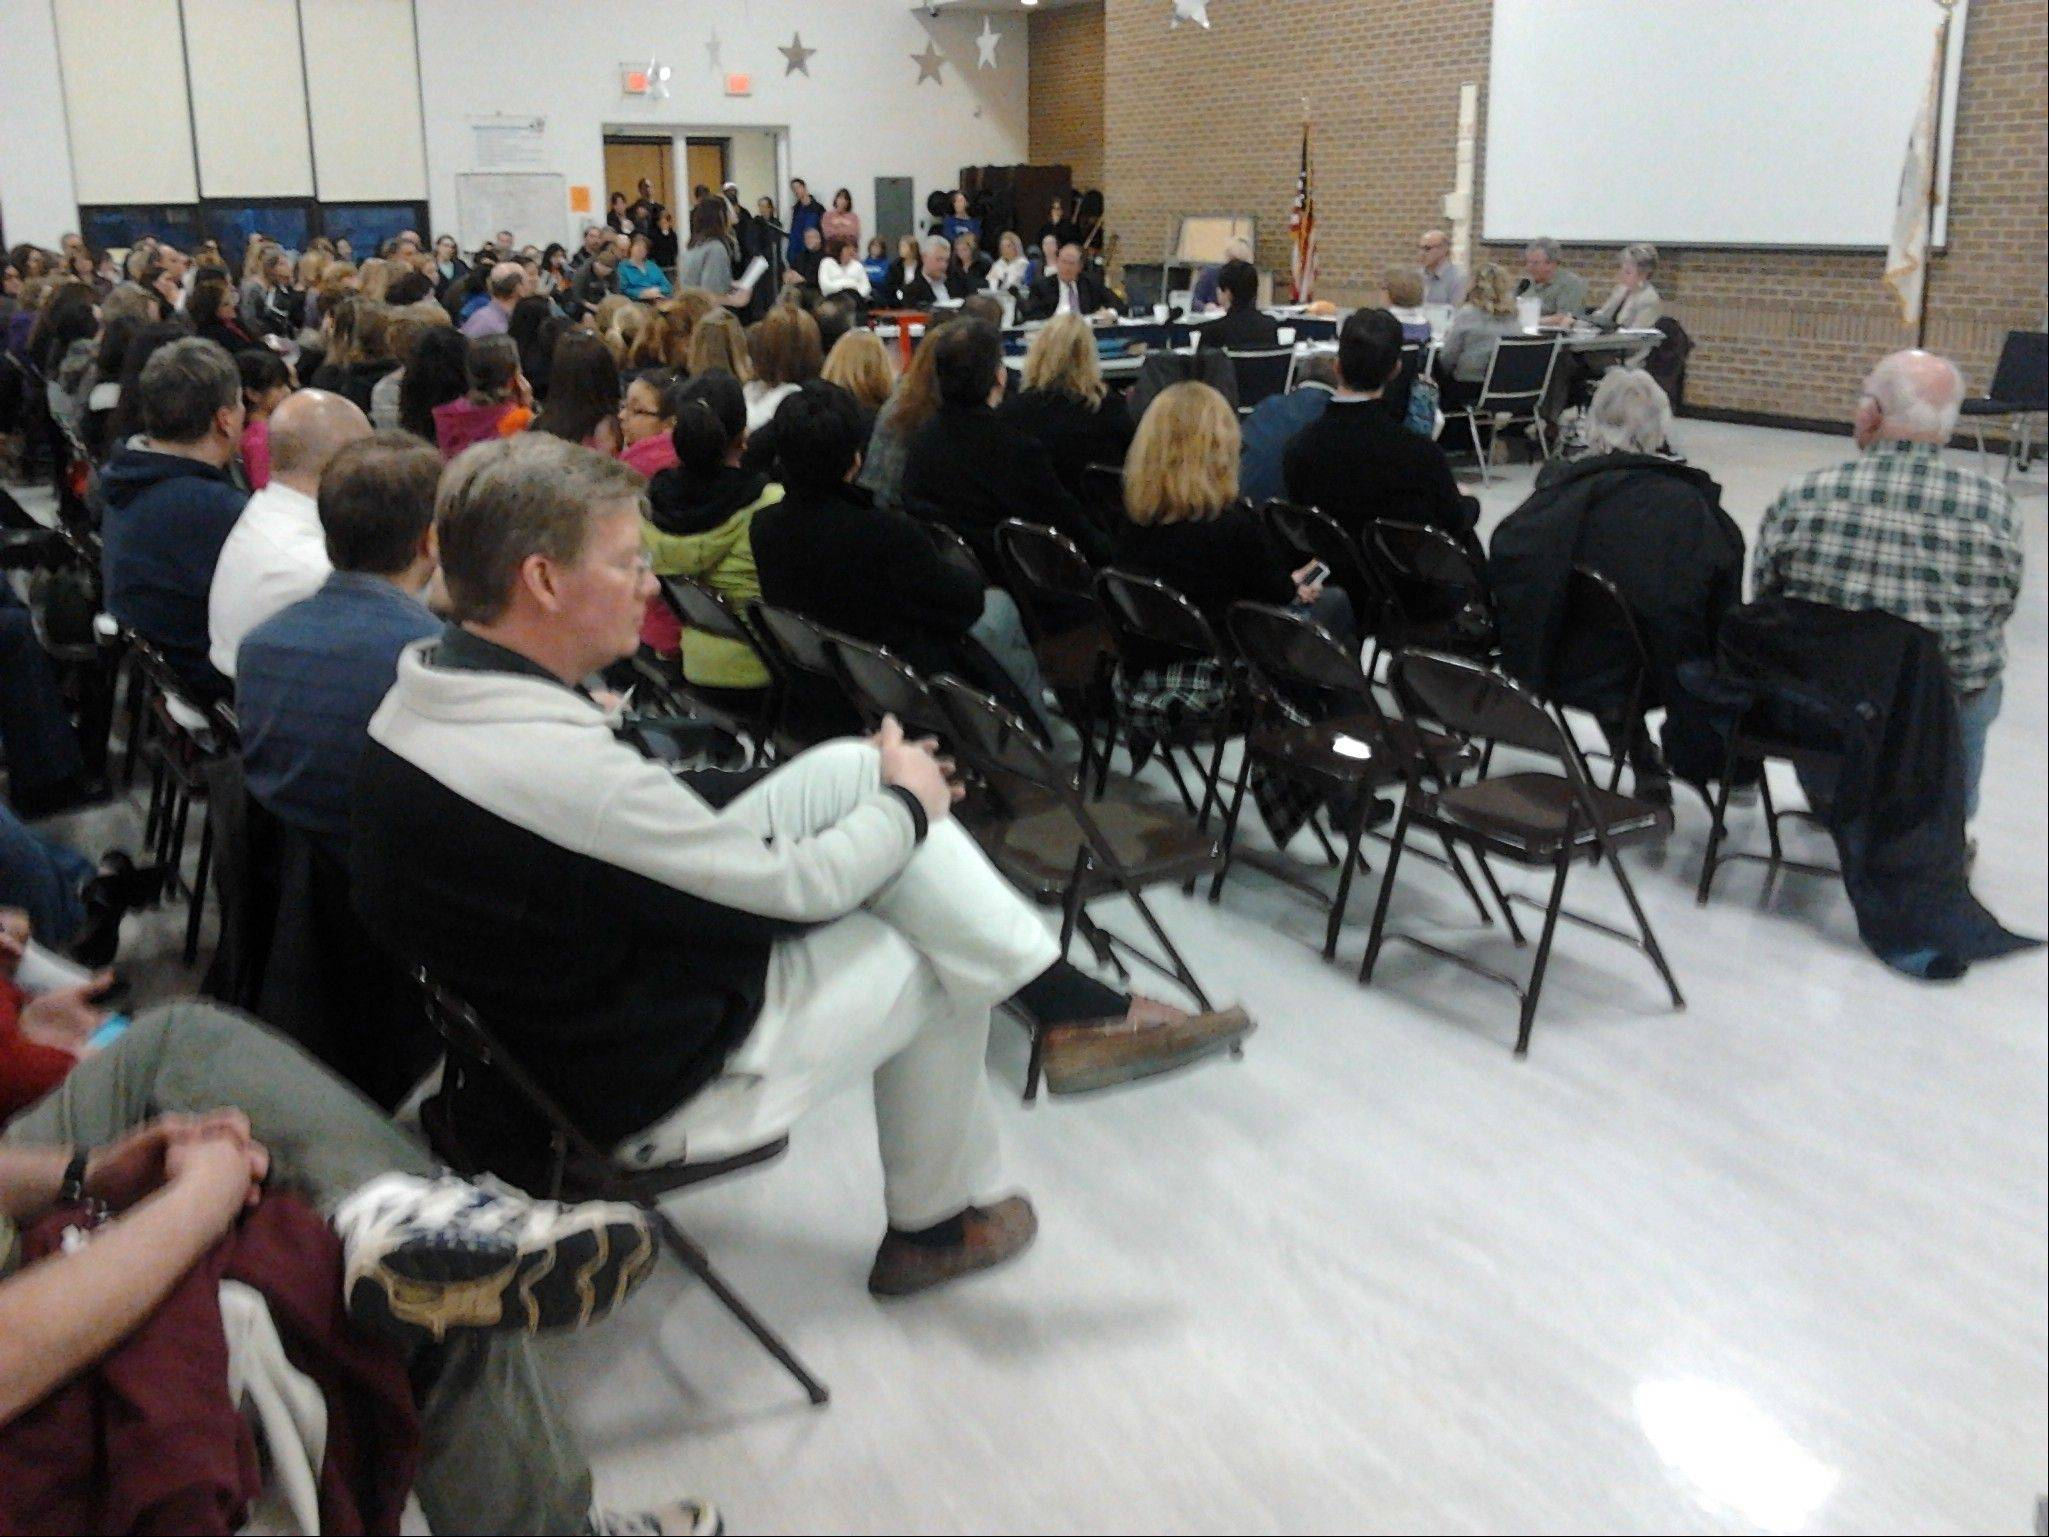 About 250 parents, students and teachers attended Wednesday night's Grayslake Elementary District 46 meeting about concerns over proposed cuts such as art and music programs.